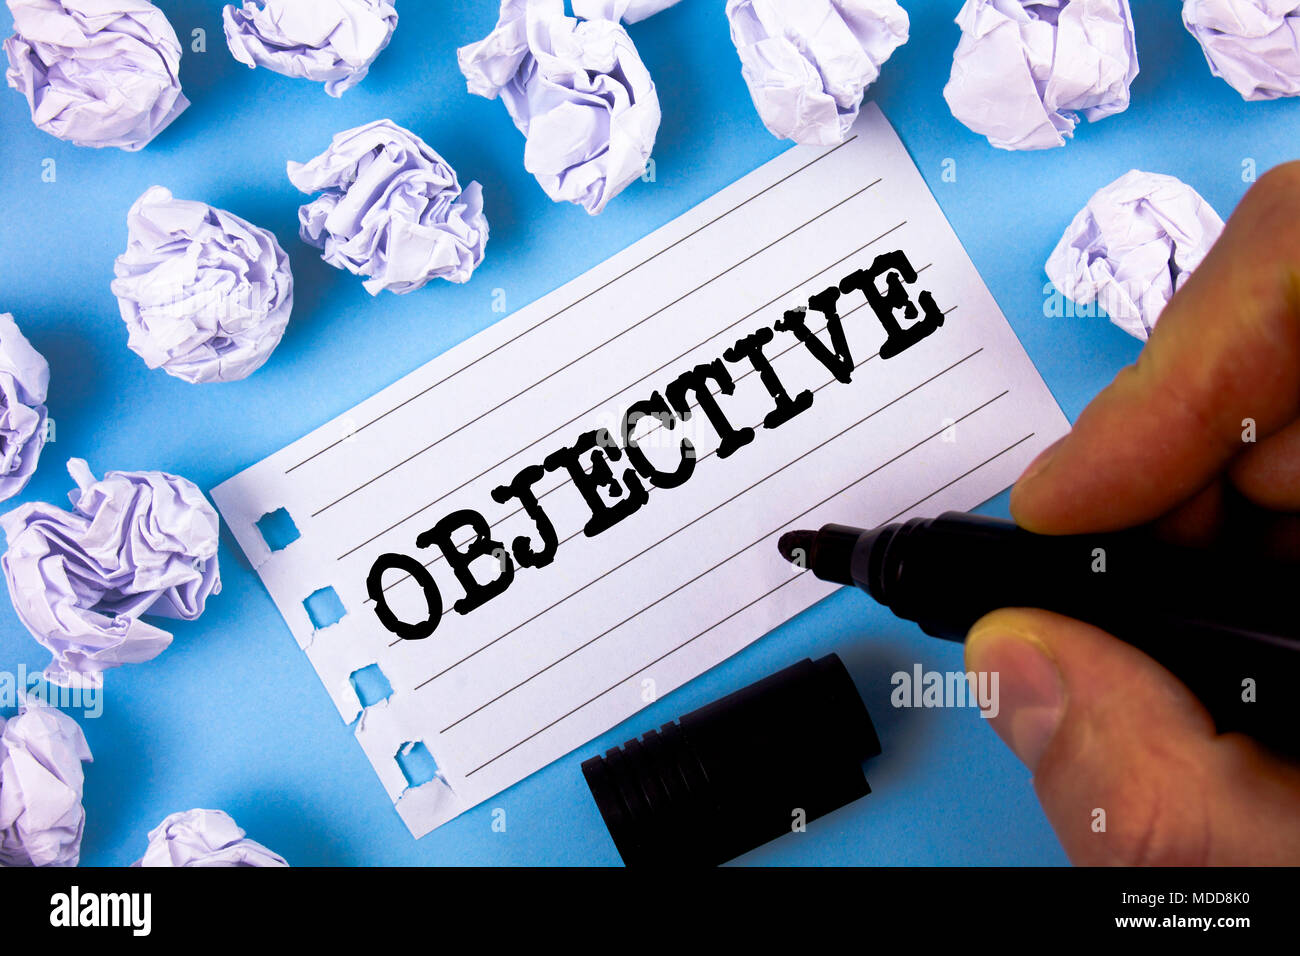 reach objectives stock image image of goals experience 35229715